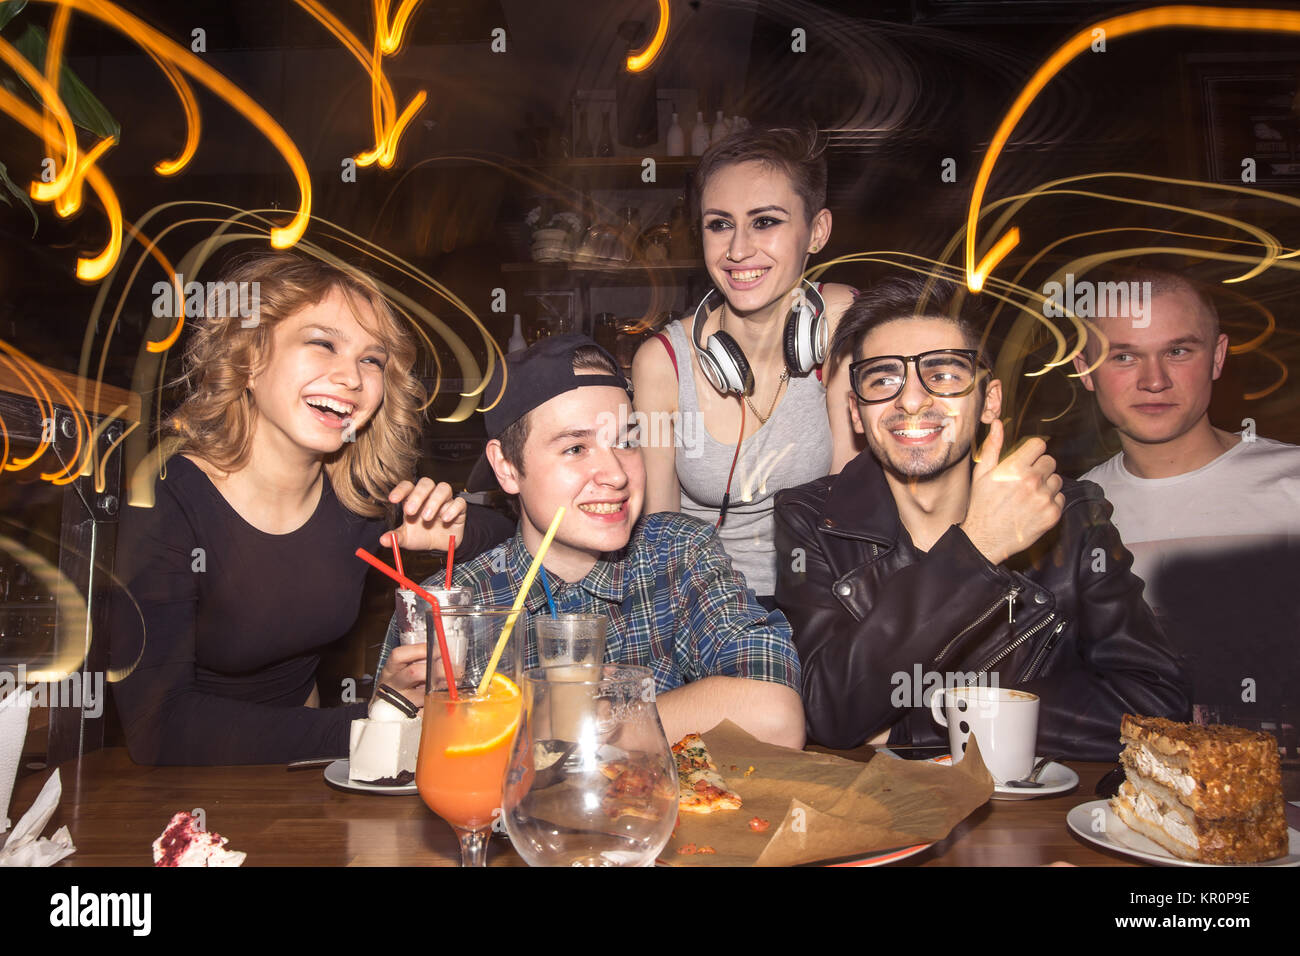 friends having fun and drinking beer in night club. long exposure - Stock Image